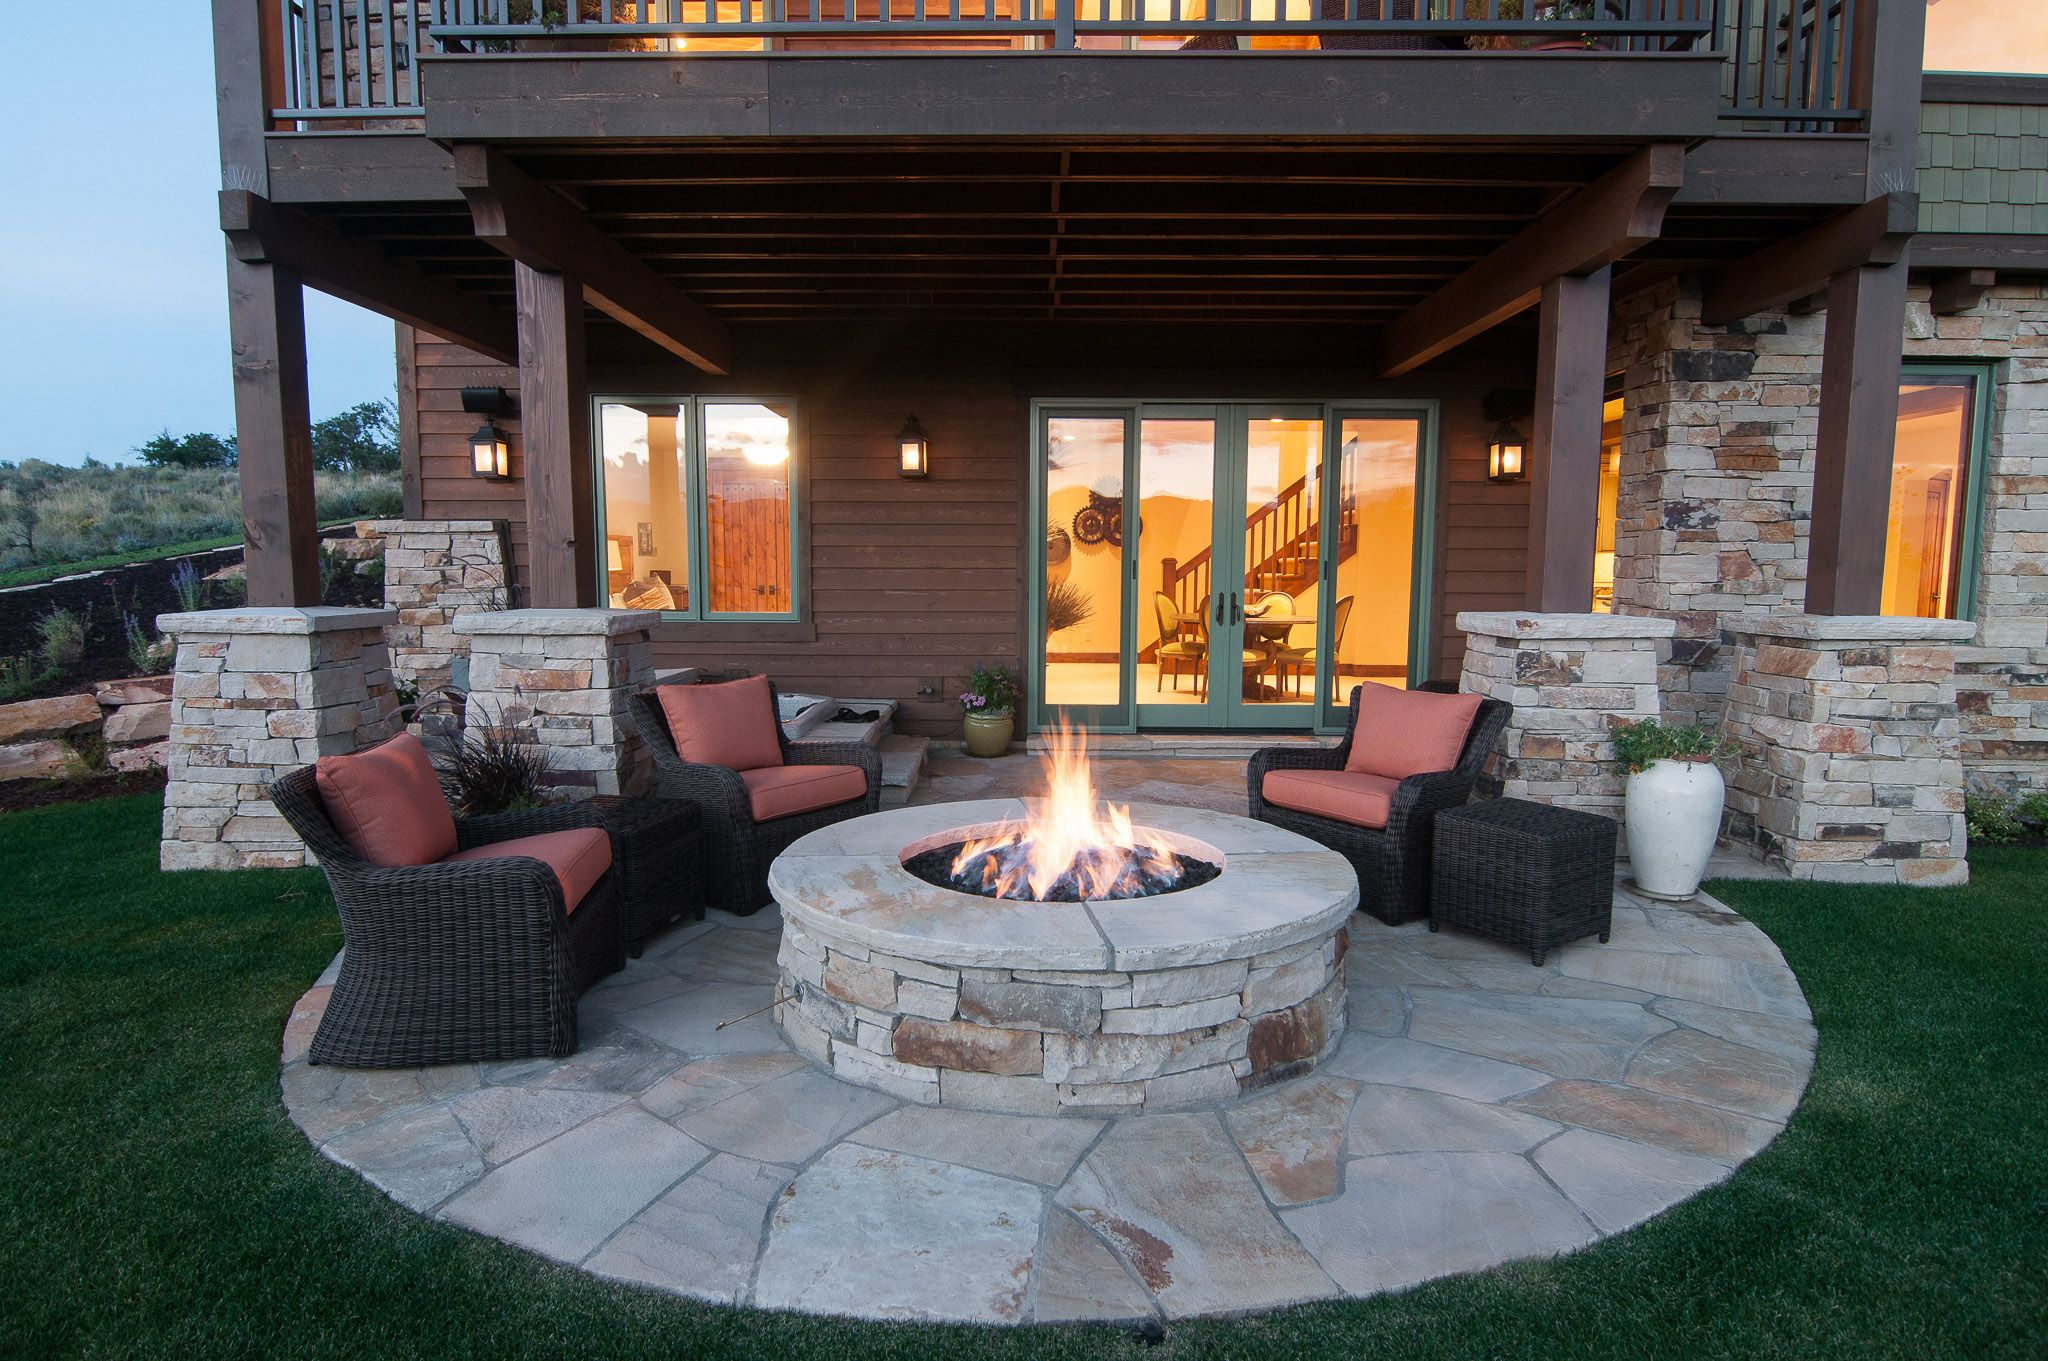 Best Outdoor Fire Pit Ideas to Have the Ultimate Backyard away